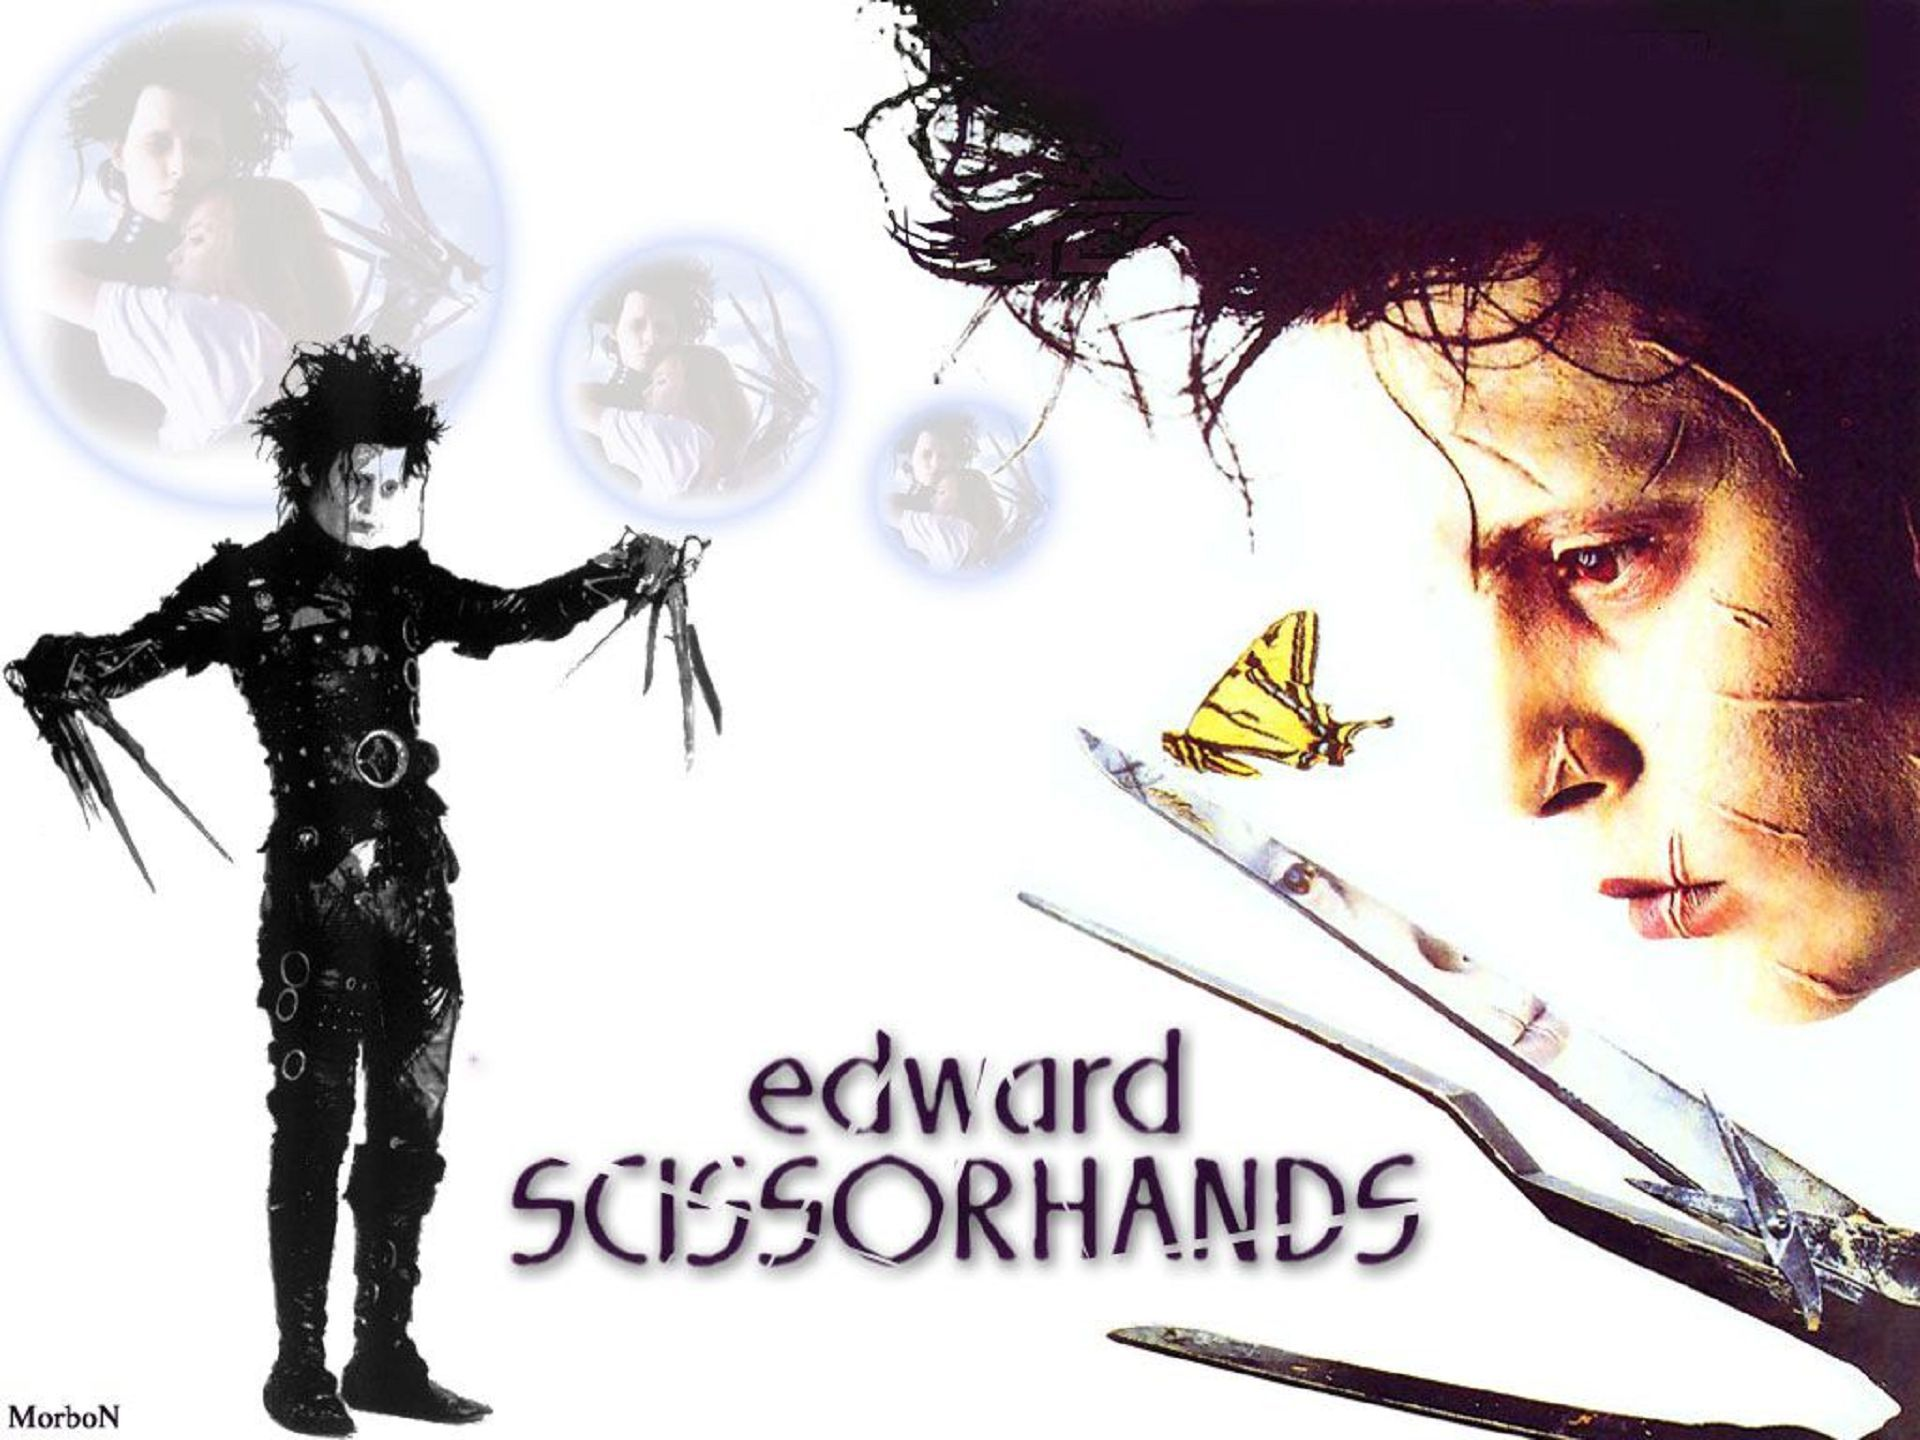 Free Download Edward Scissorhands Wallpapers Hd 1920x1440 For